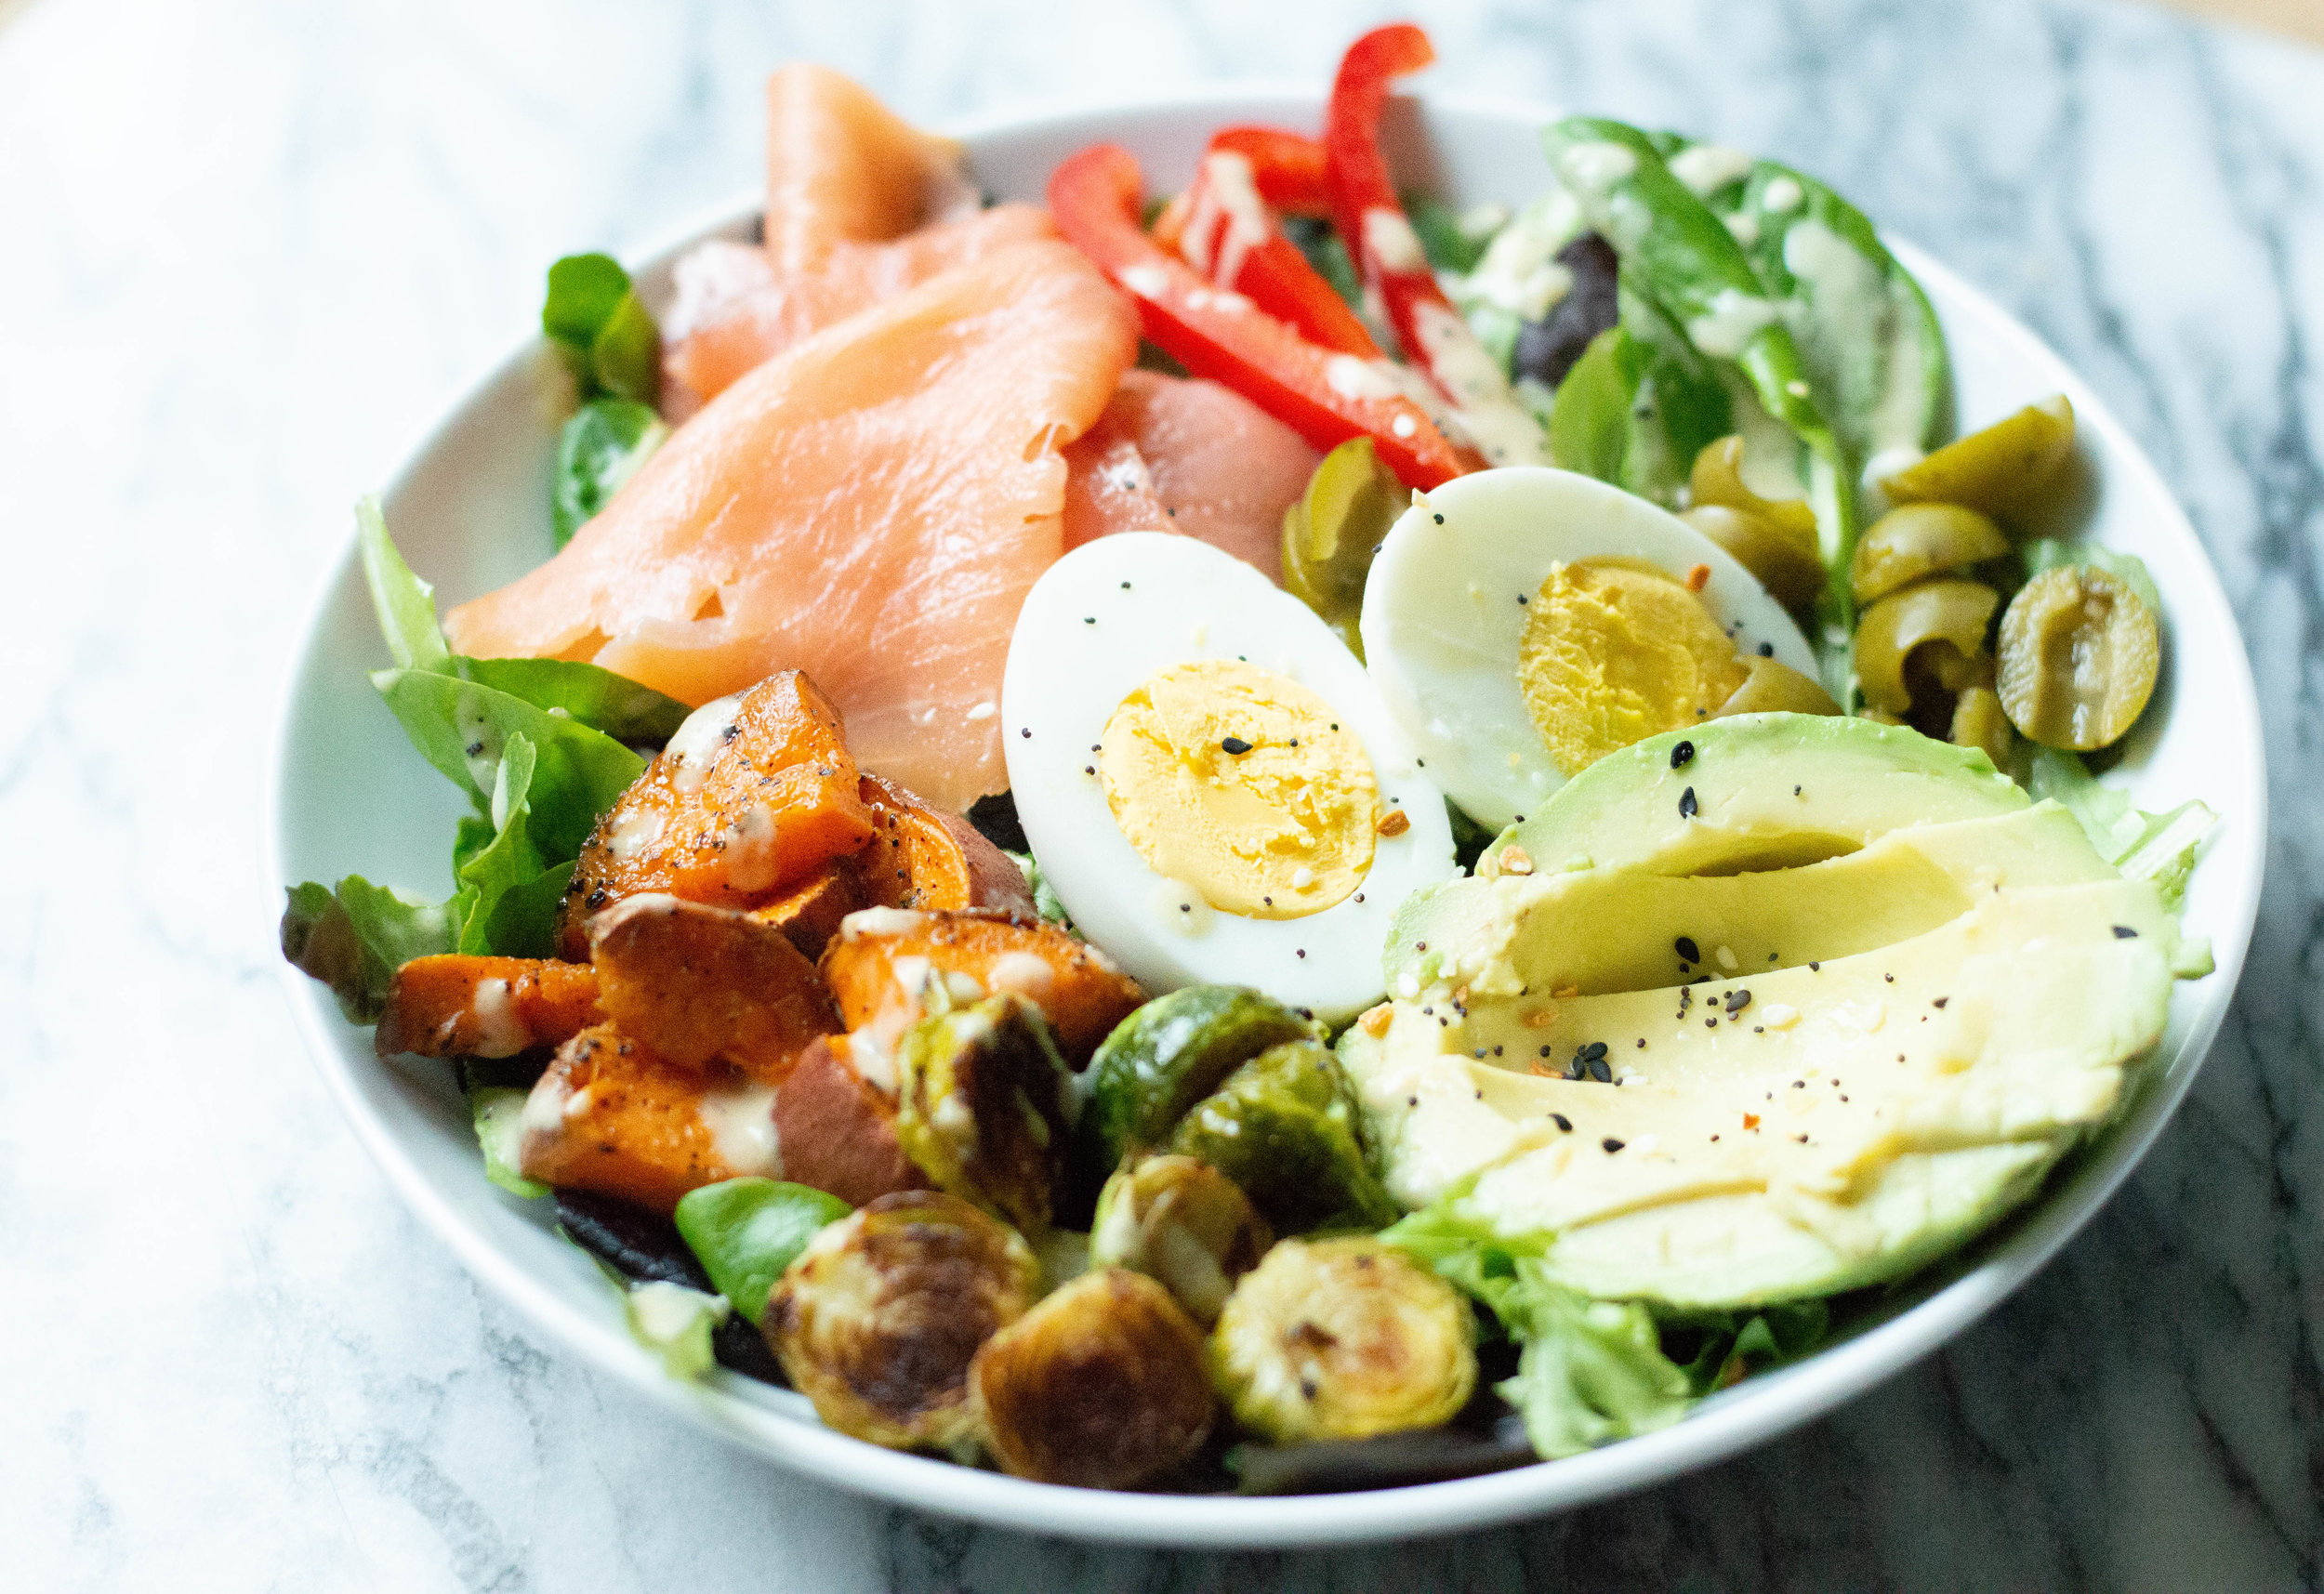 LoadedGreenSalmonSalad-12 (1 of 1).jpg